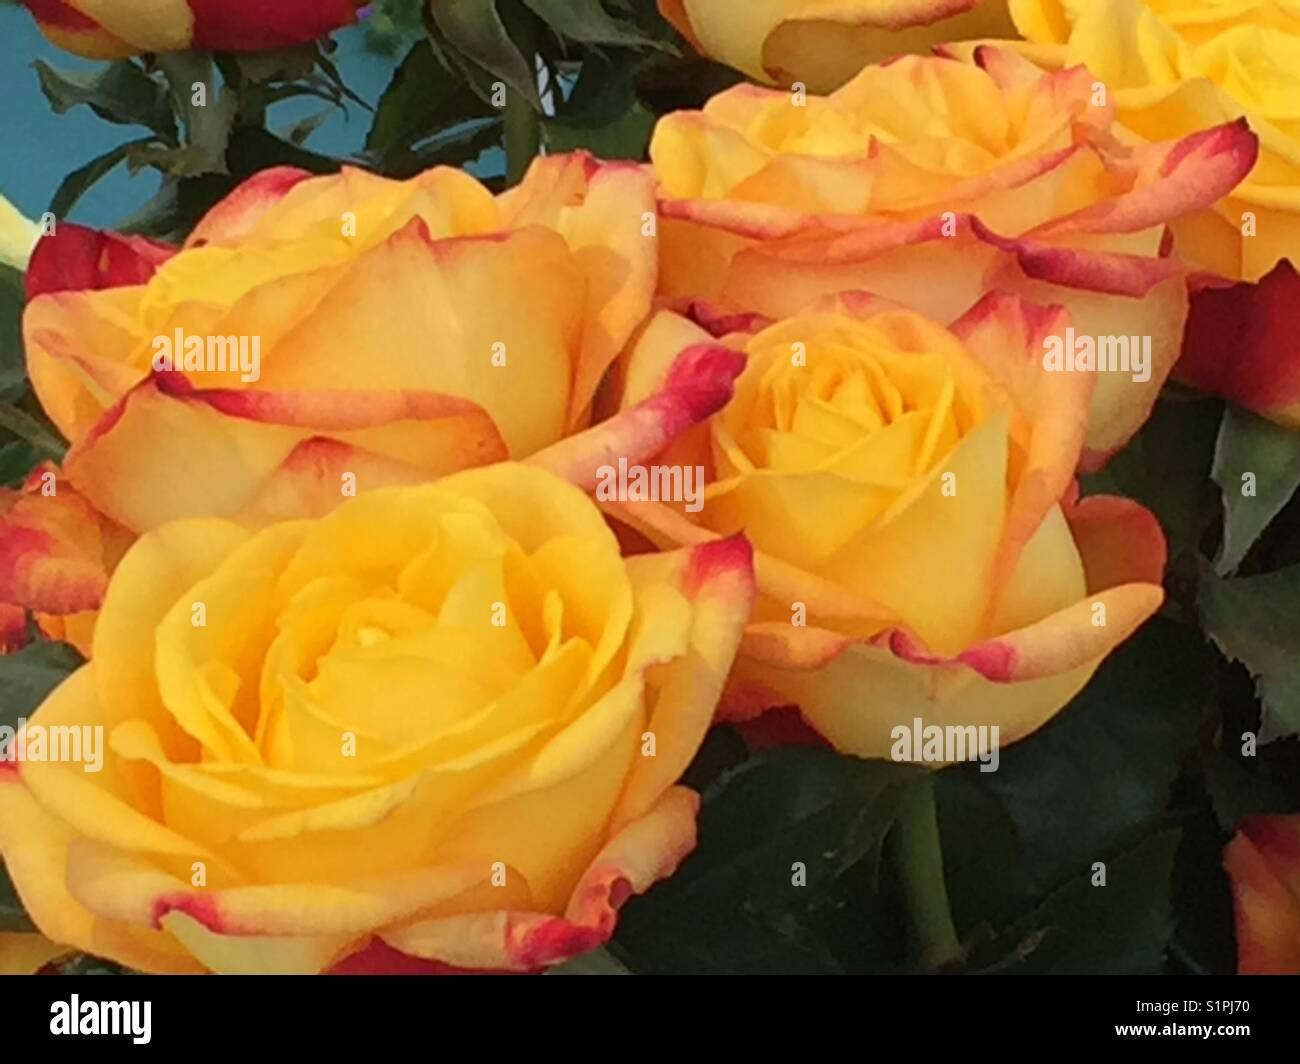 Yellow and pink rose Magma - Stock Image